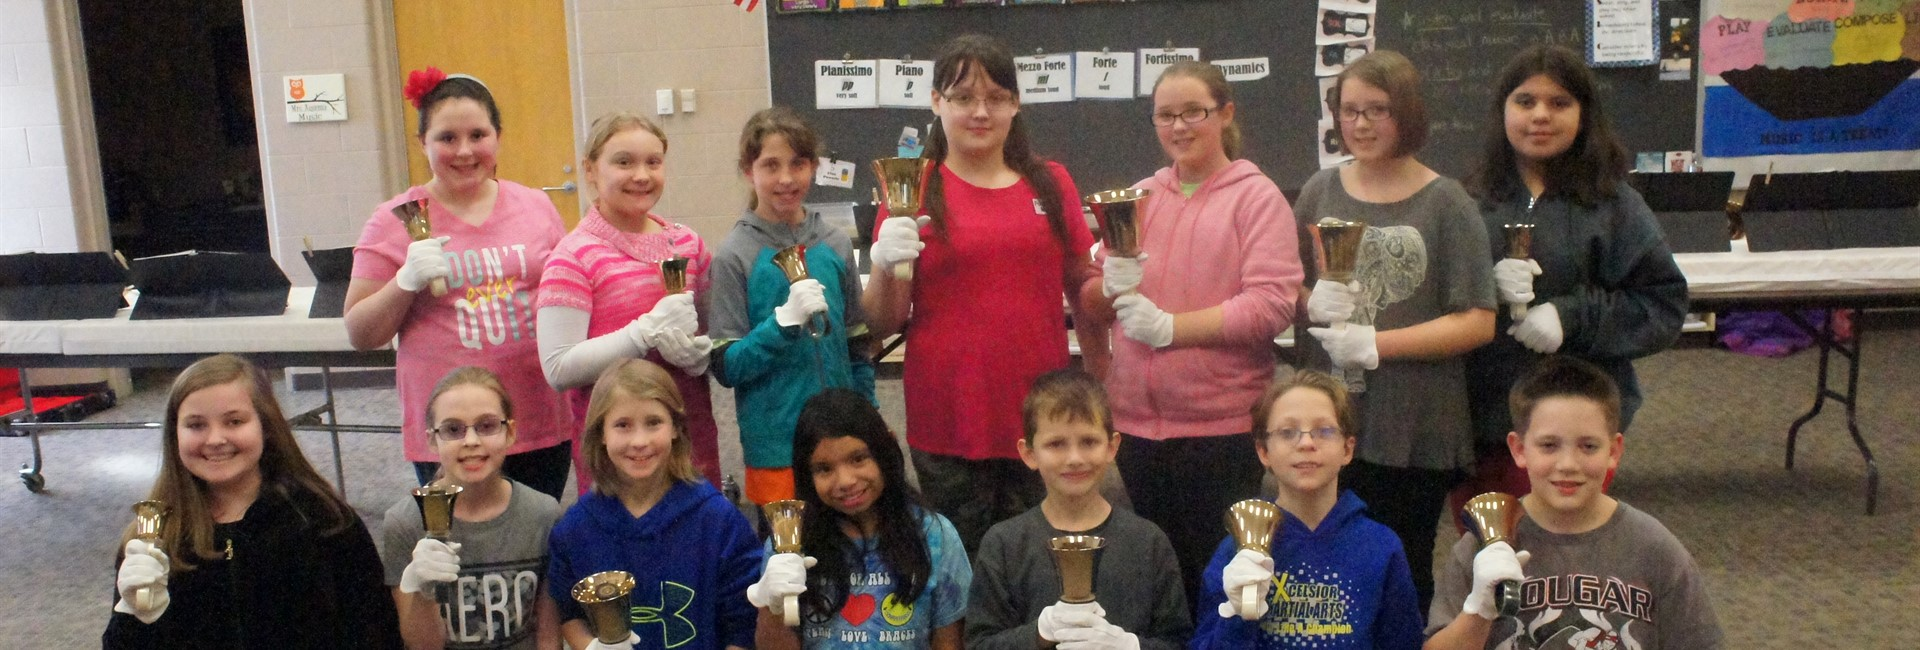 Kankakee Valley Intermediate School 5th Grade Handbell Choir with their handbells.